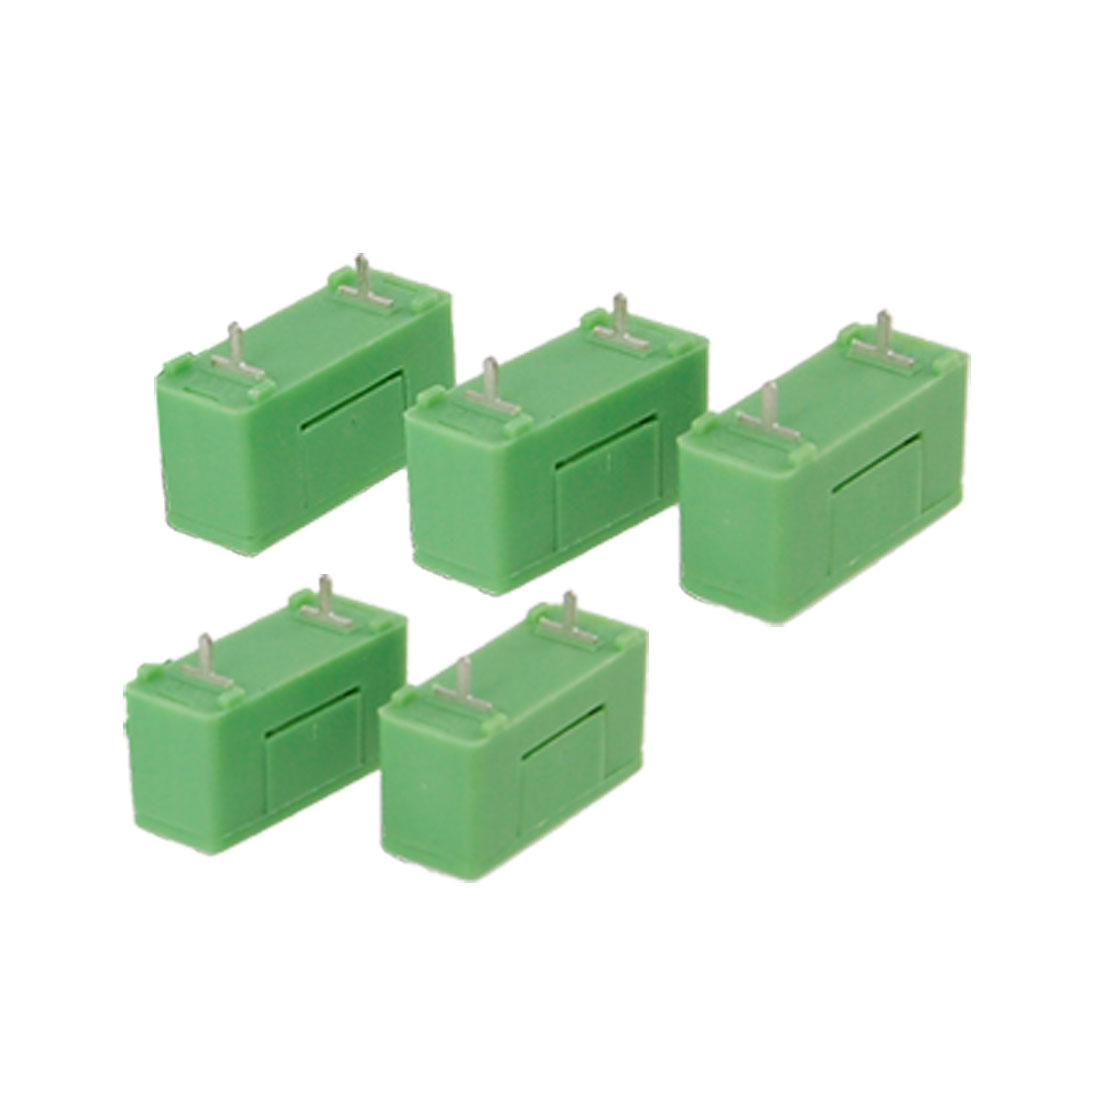 5 Pcs Inner Pin PCB Mount Holder 250V 6.3A for 5 x 20mm Fuse